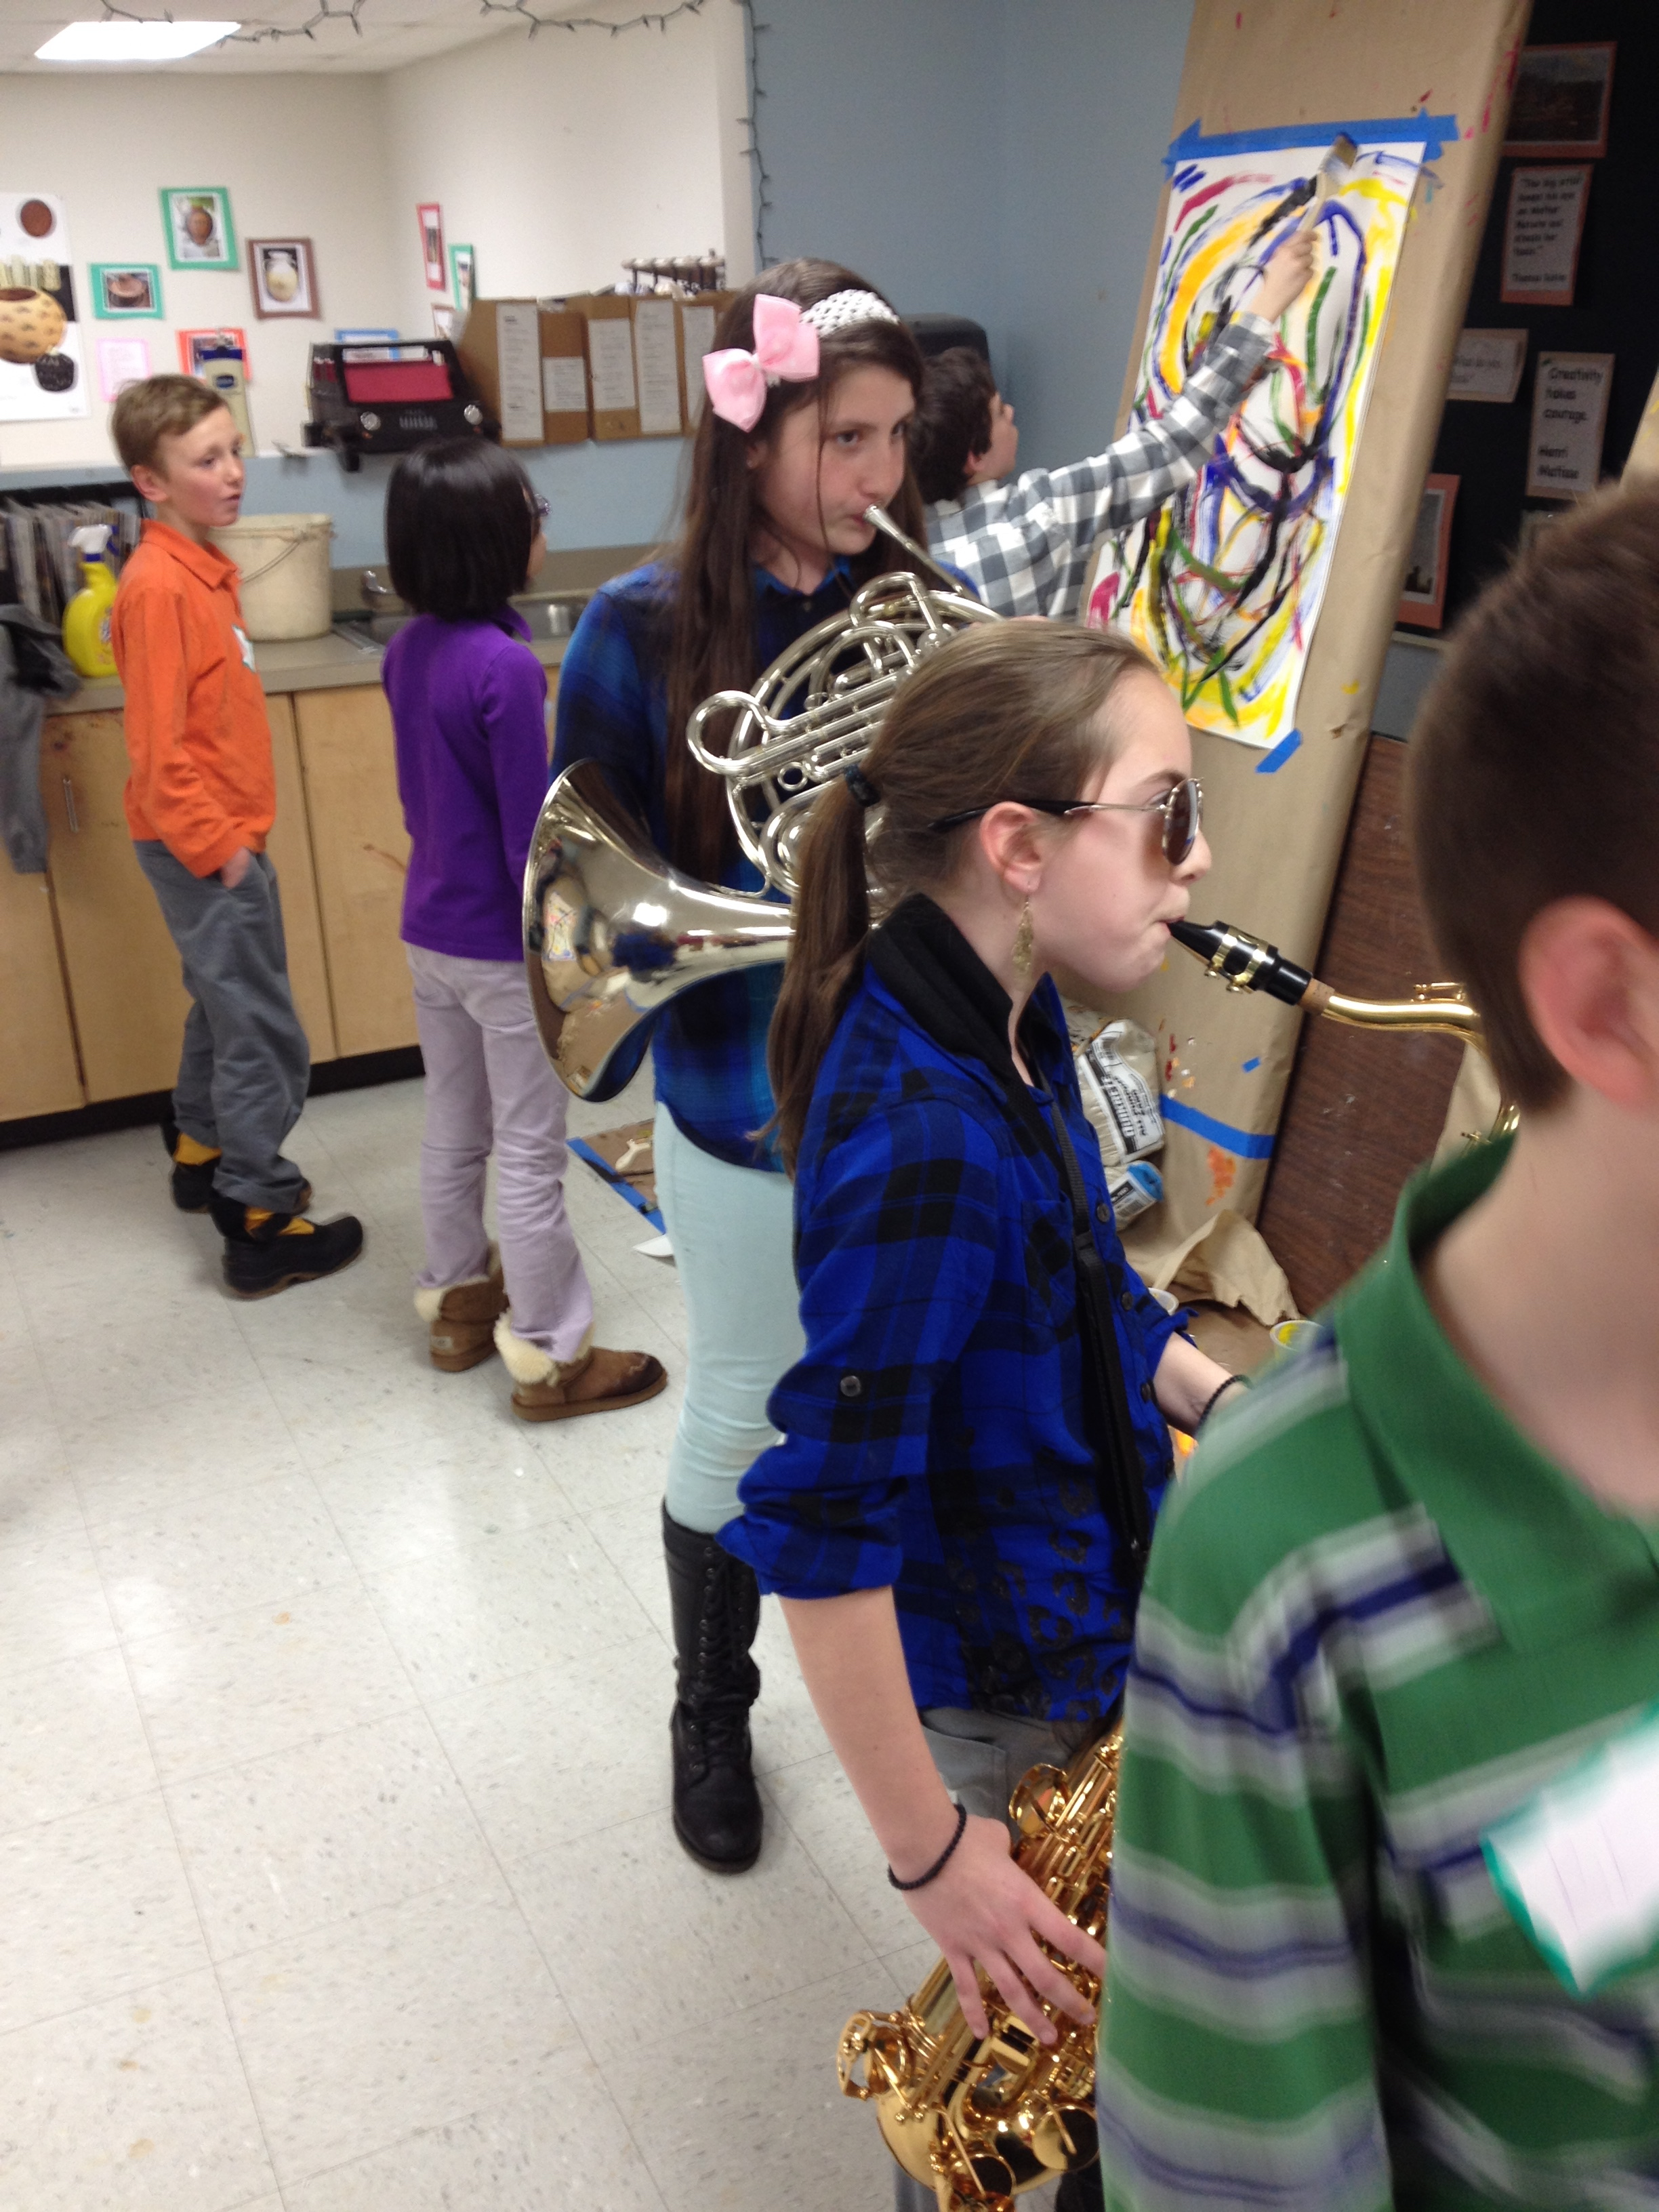 Six grade jazz students wade right into the visual jazz conversation, approaching each painter with call and response